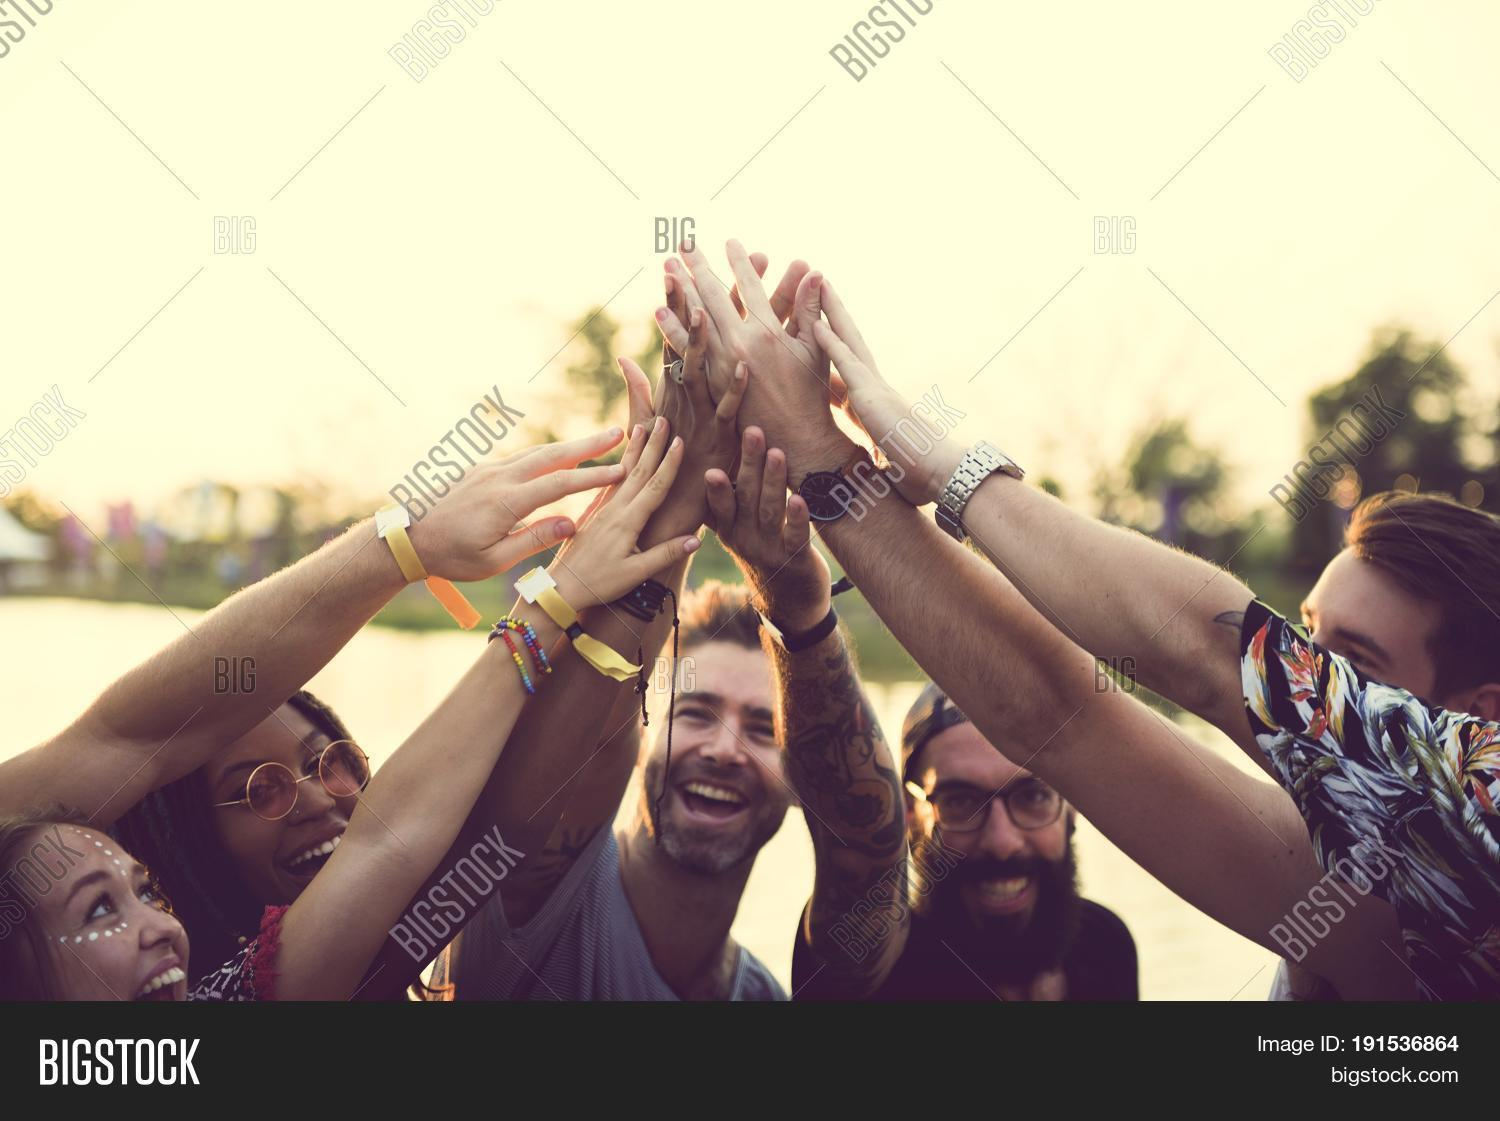 Friends Hands Together Image & Photo (Free Trial) | Bigstock